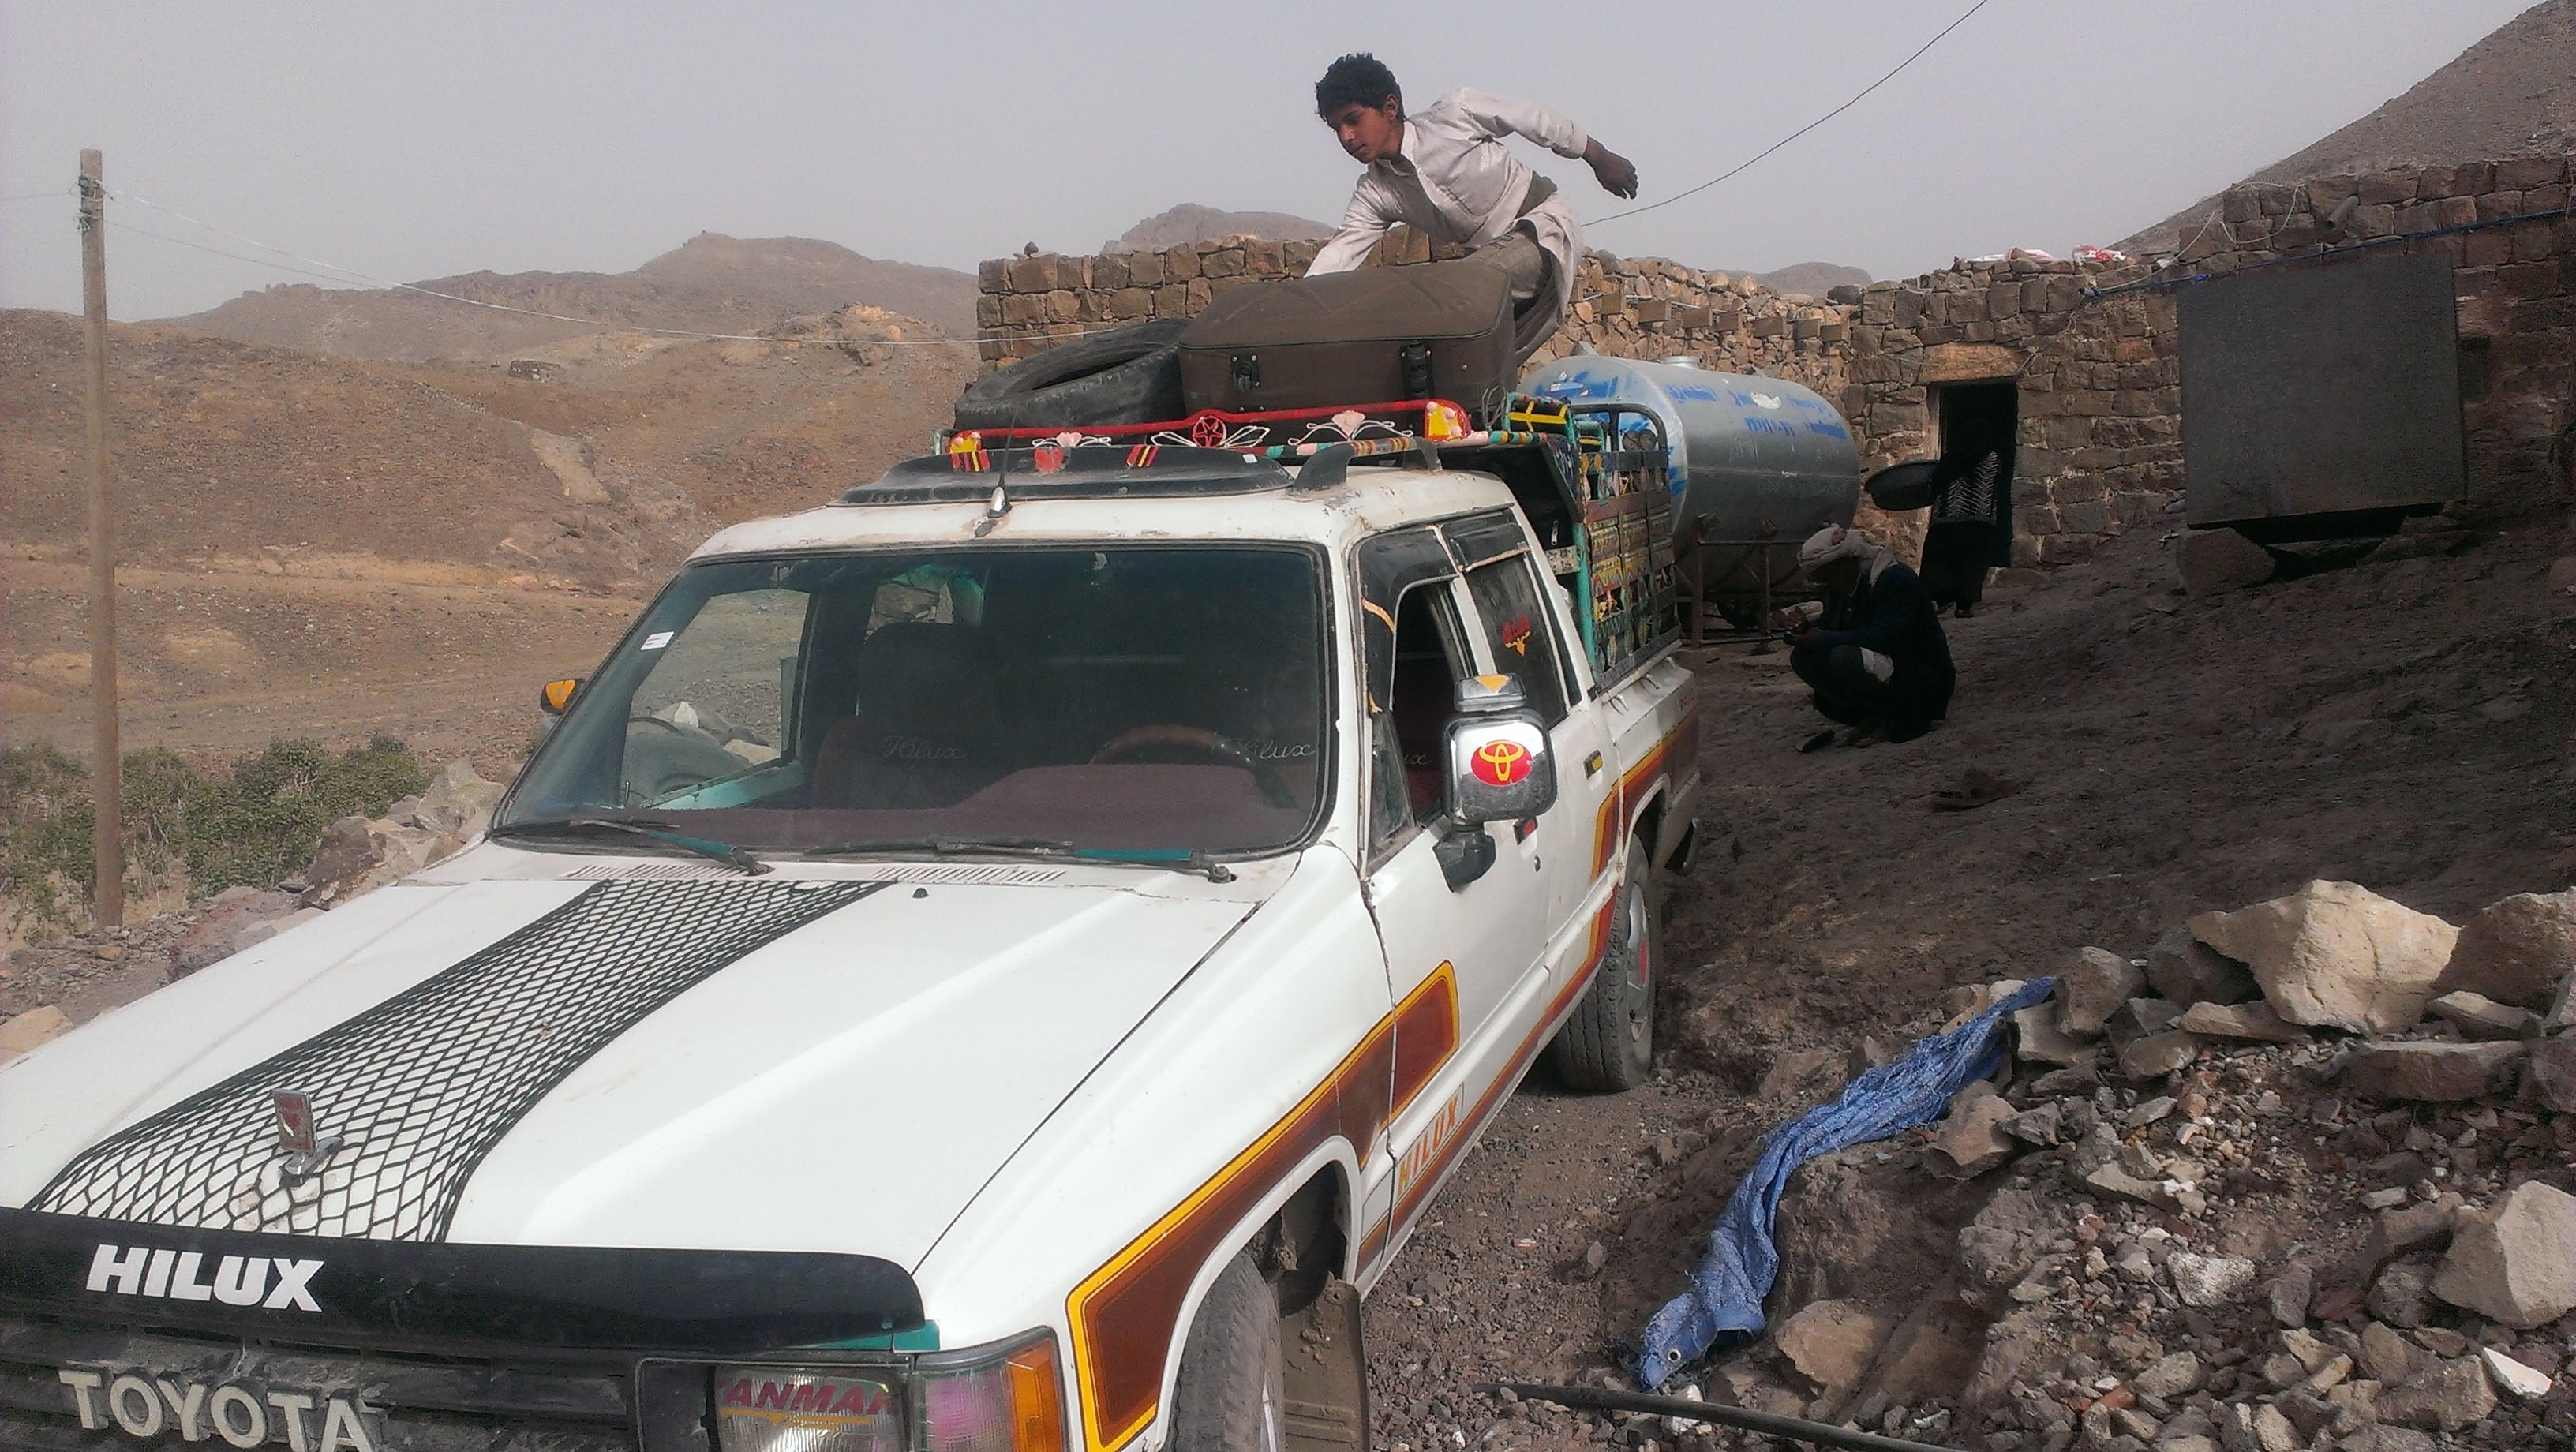 Many civilians in Yemen have fled the cities for their home villages amid a Saudi-led bombing campaign and clashes on the ground